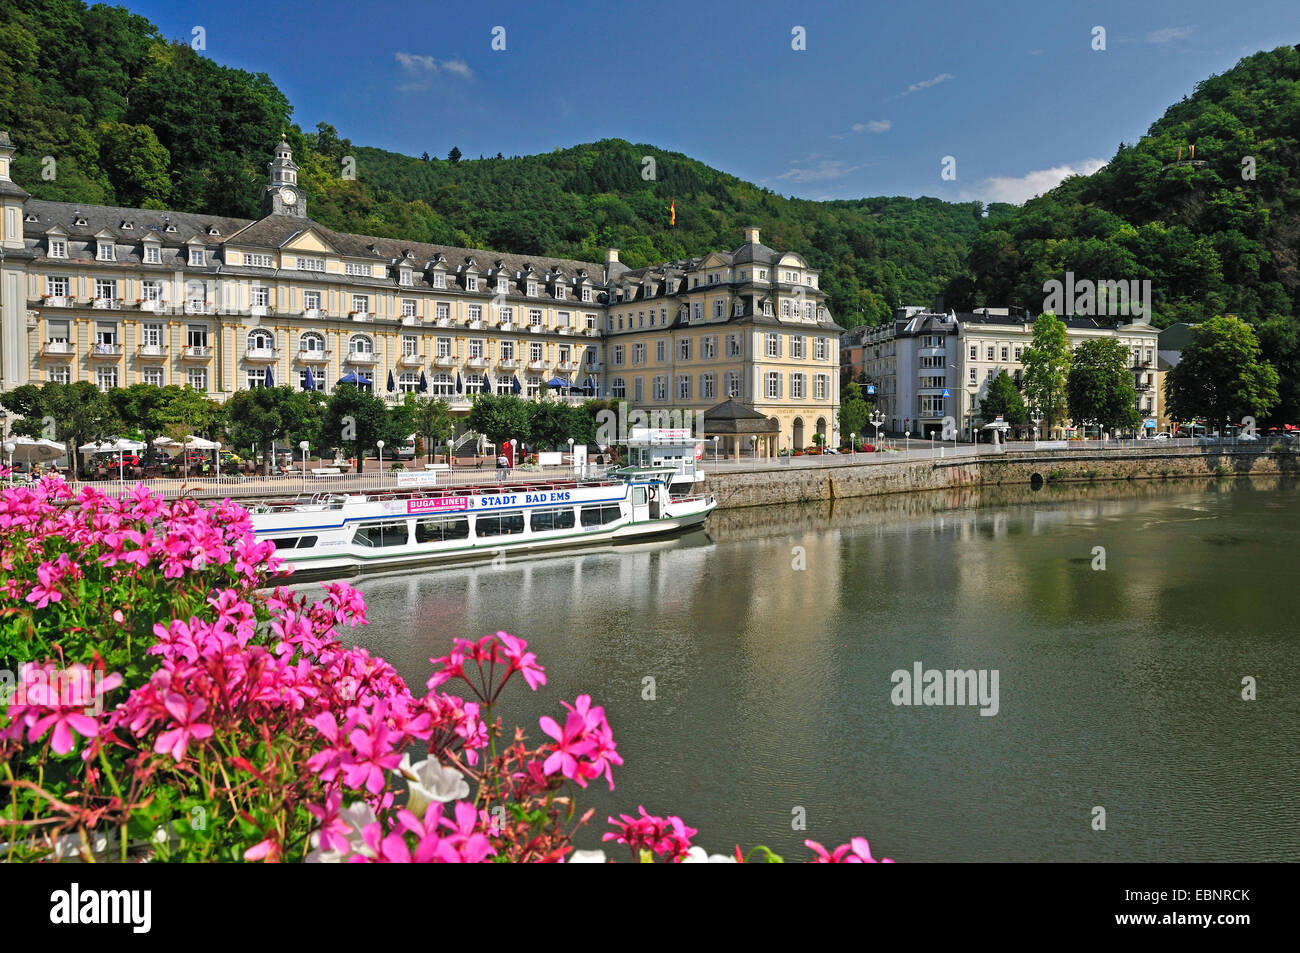 Bad ems germany stockfotos bad ems germany bilder alamy for Designhotel rheinland pfalz